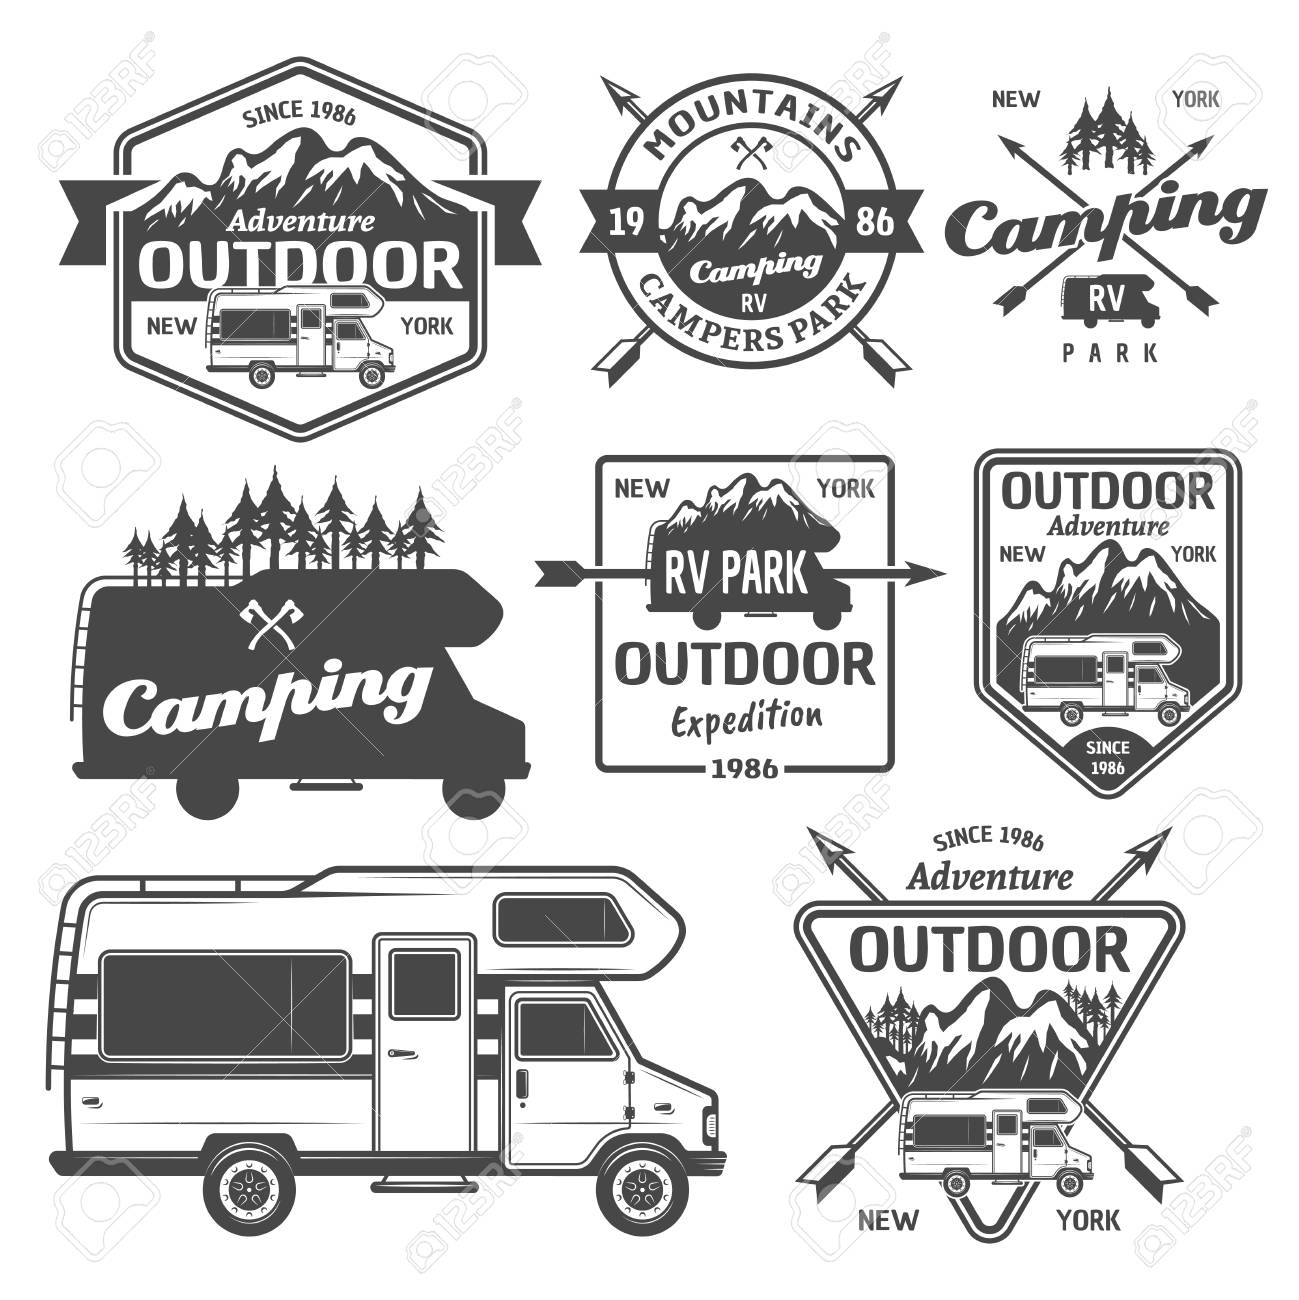 Set of rv camping, outdoor recreation with mountains and camper van vector monochrome labels, emblems, badges and design elements isolated on white background - 103007218